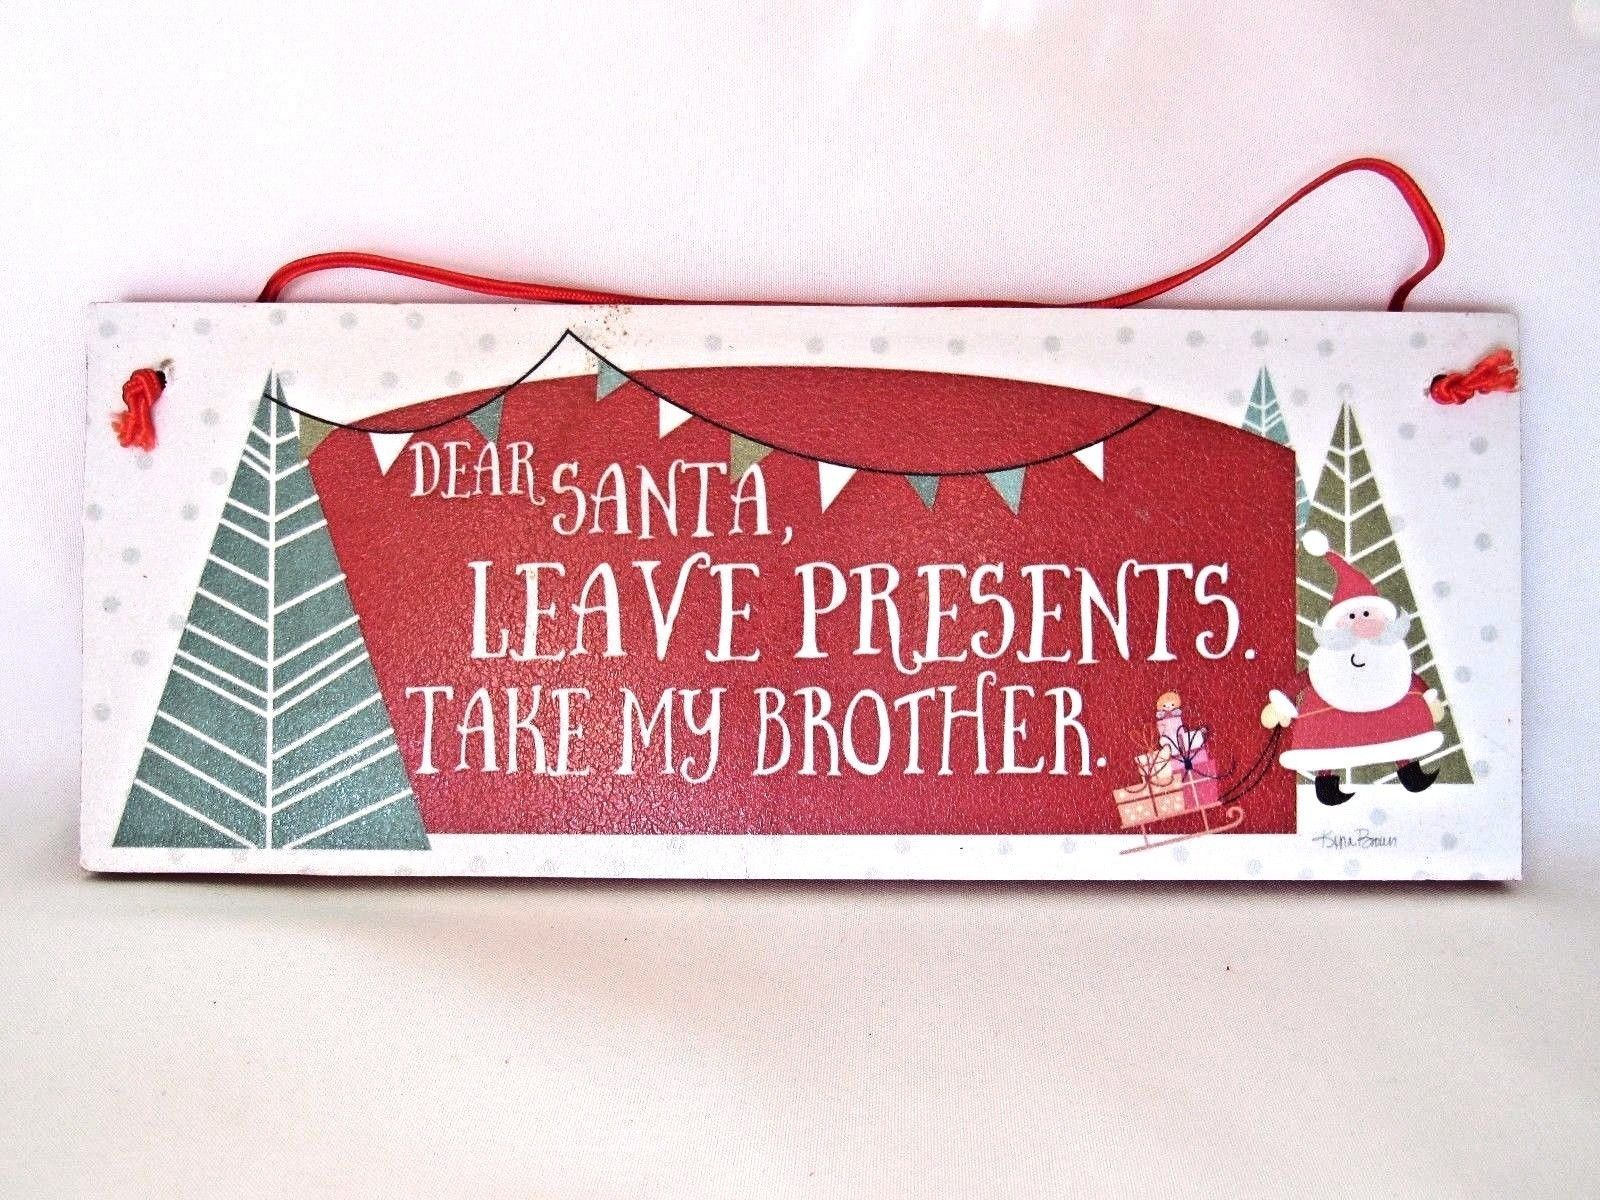 Christmas Holiday Santa Wall Art Humorous Wooden Plaque Take My Brother New